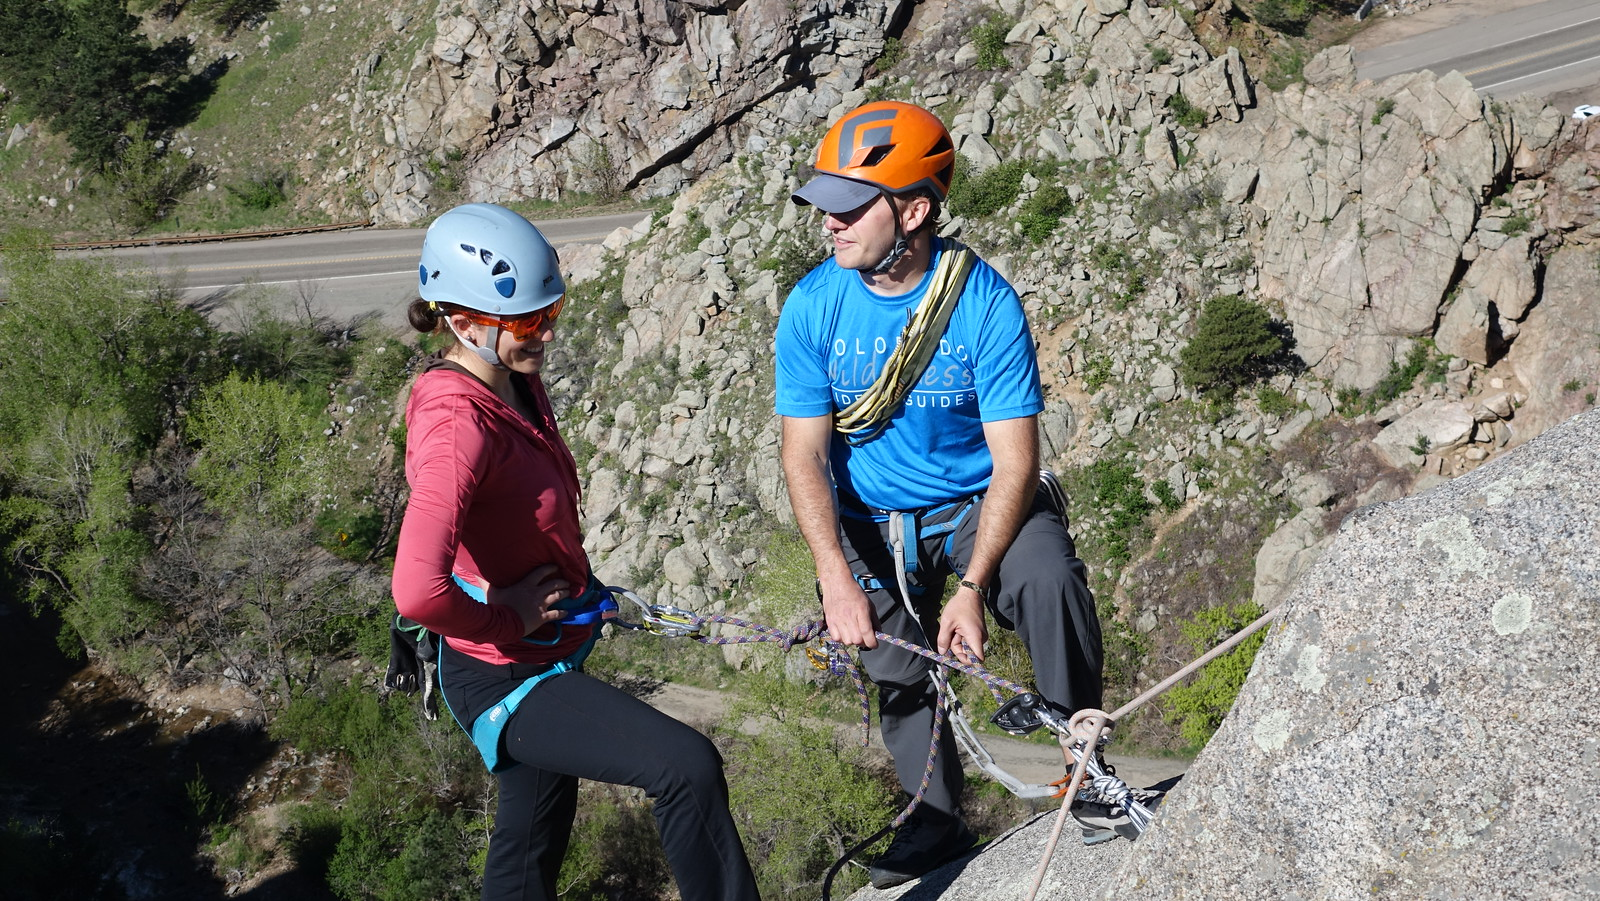 guide teaching a woman about rock climbing anchors